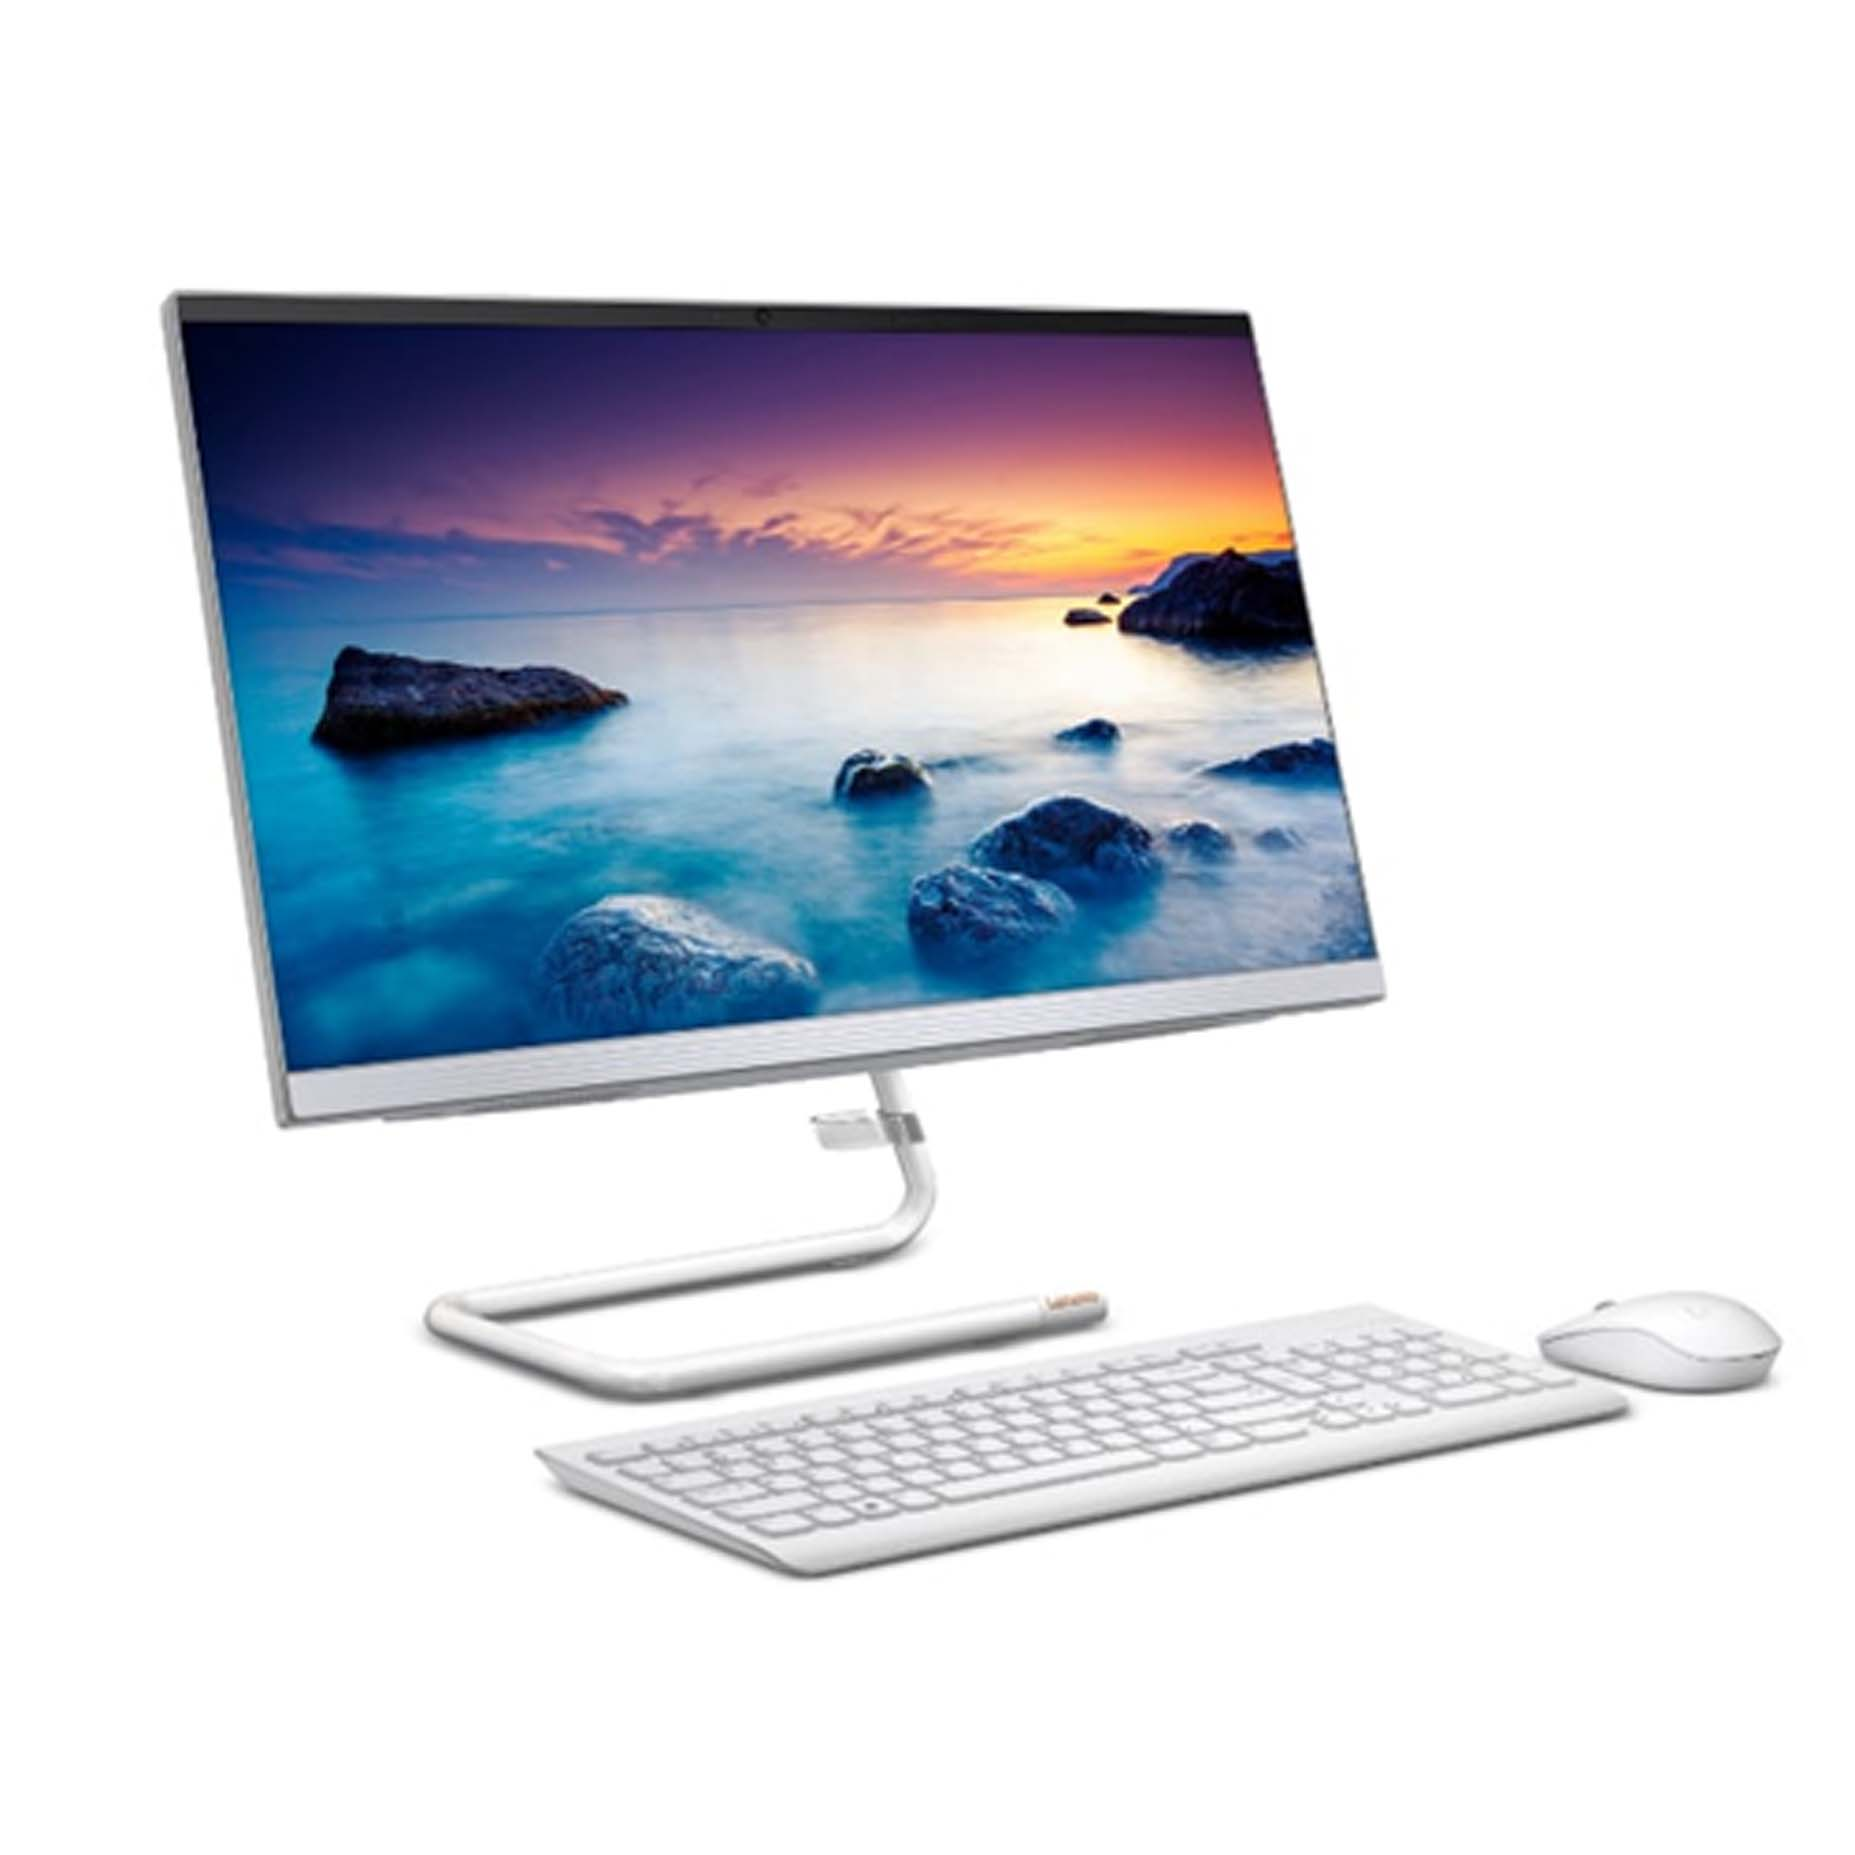 Harga Lenovo IdeaCentre A340-22IWL 0PID All in One i3-8145U 4GB 1TB Integrated DOS 21.5 Inch White